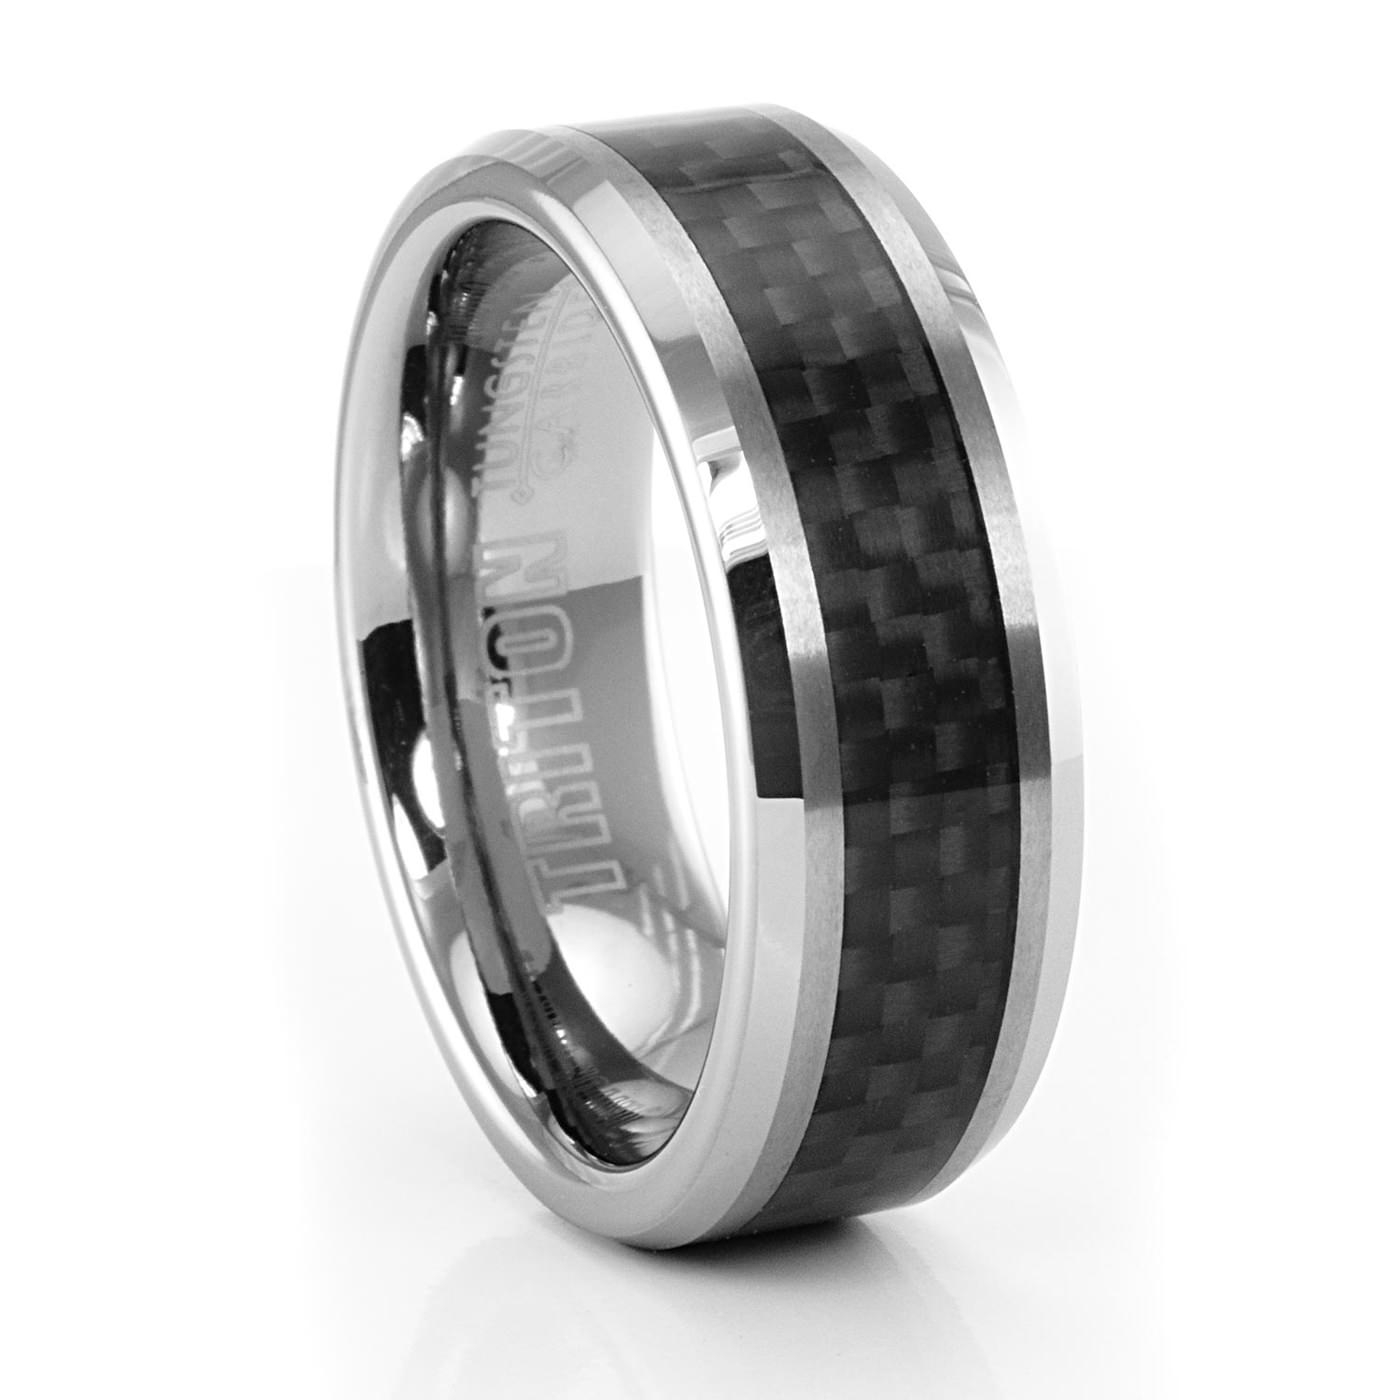 Triton Wilton Carbon Fiber & Tungsten Ring – 8Mm Regarding Mens Carbon Fiber Wedding Rings (View 14 of 15)